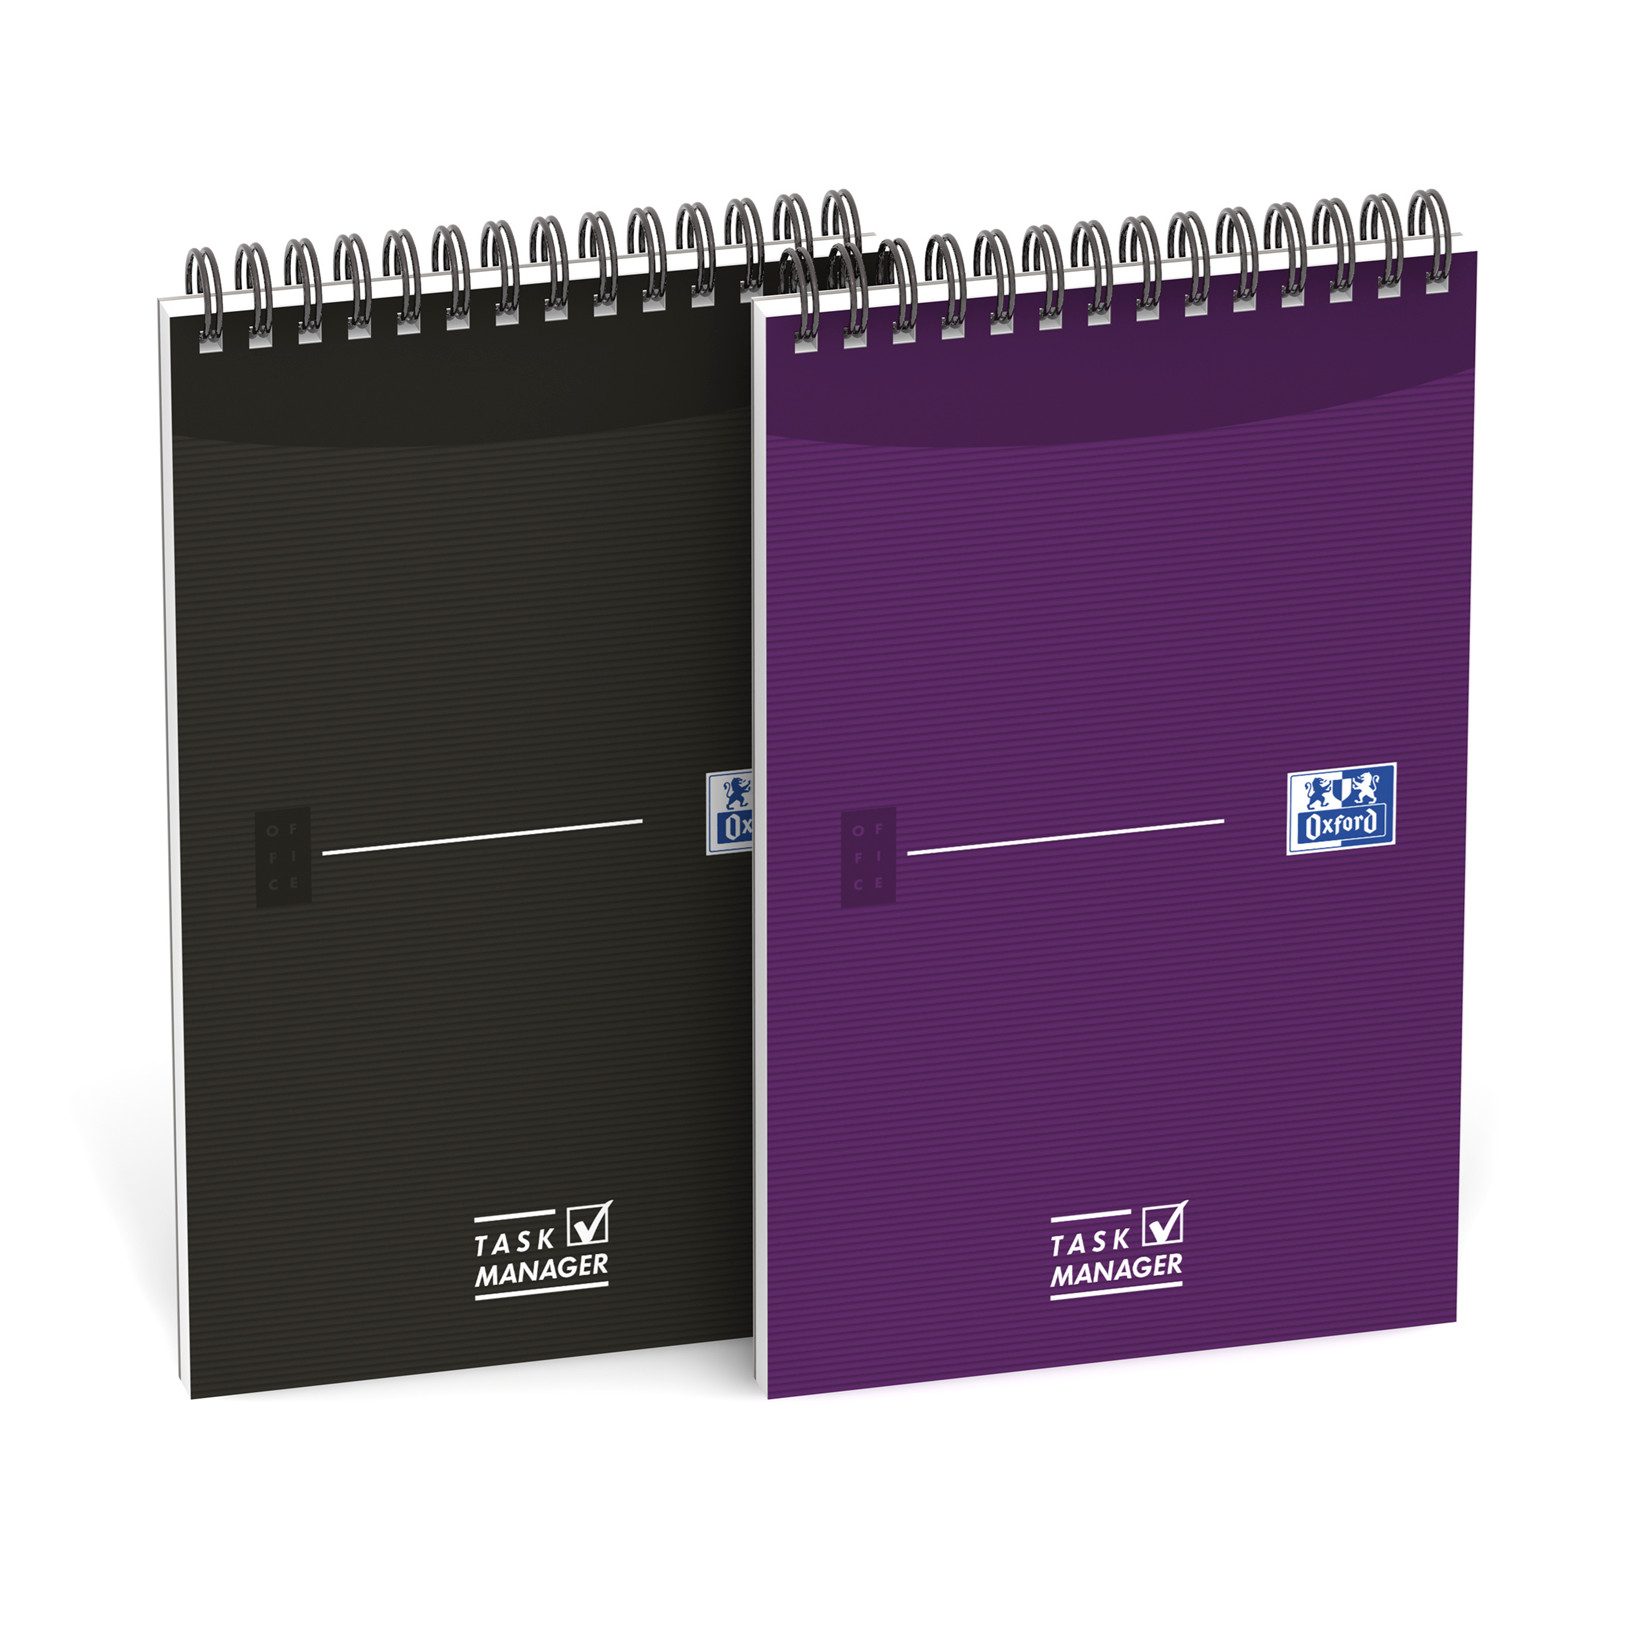 Notesbog Oxford Task Manager 125x200mm linieret